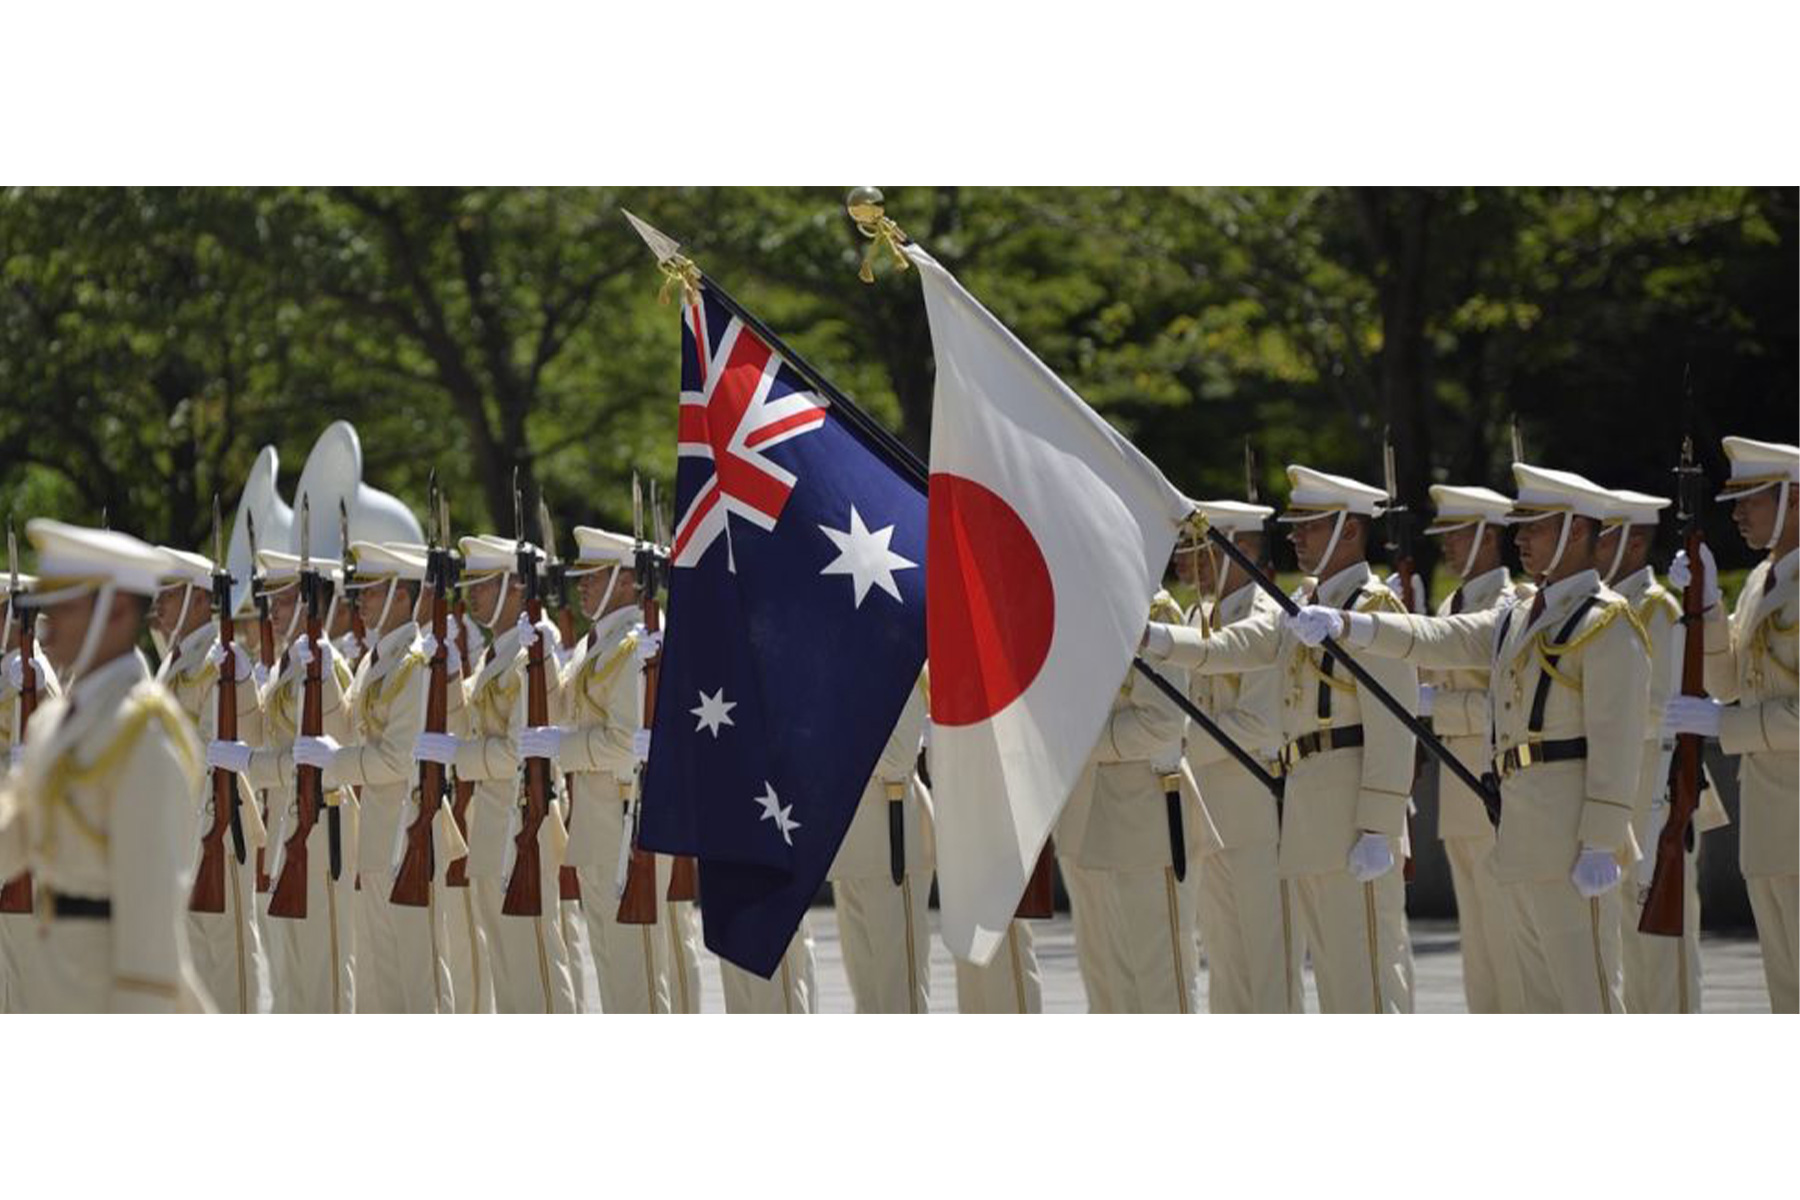 Japan and Australia Set the Stage for a Security Alliance Independent of the U.S. - Despite their locations on opposite ends of the Pacific, Australia and Japan share many concerns: the safety of their shipping via sea lanes, the increased pressure put on them by China's rise in power and a complicated alliance with the United States.